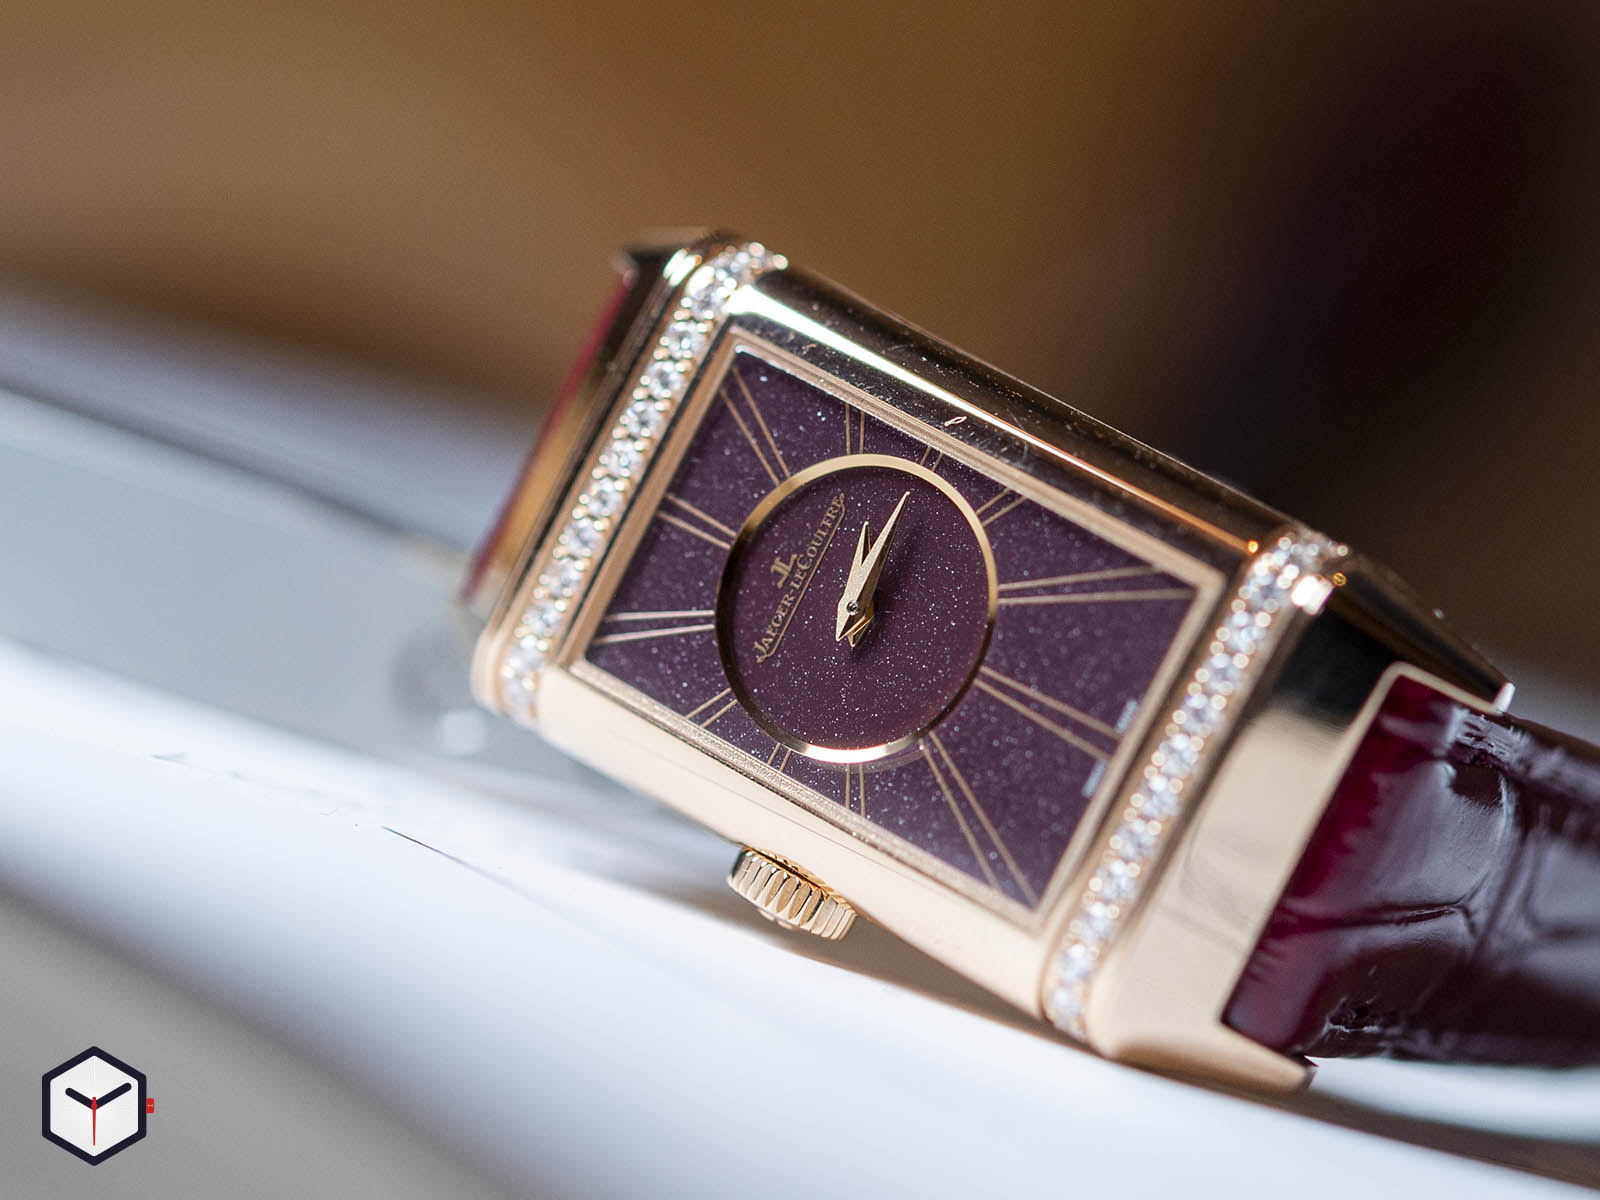 3342520-jaeger-lecoultre-reverso-one-duetto-sihh-2019-4.jpg